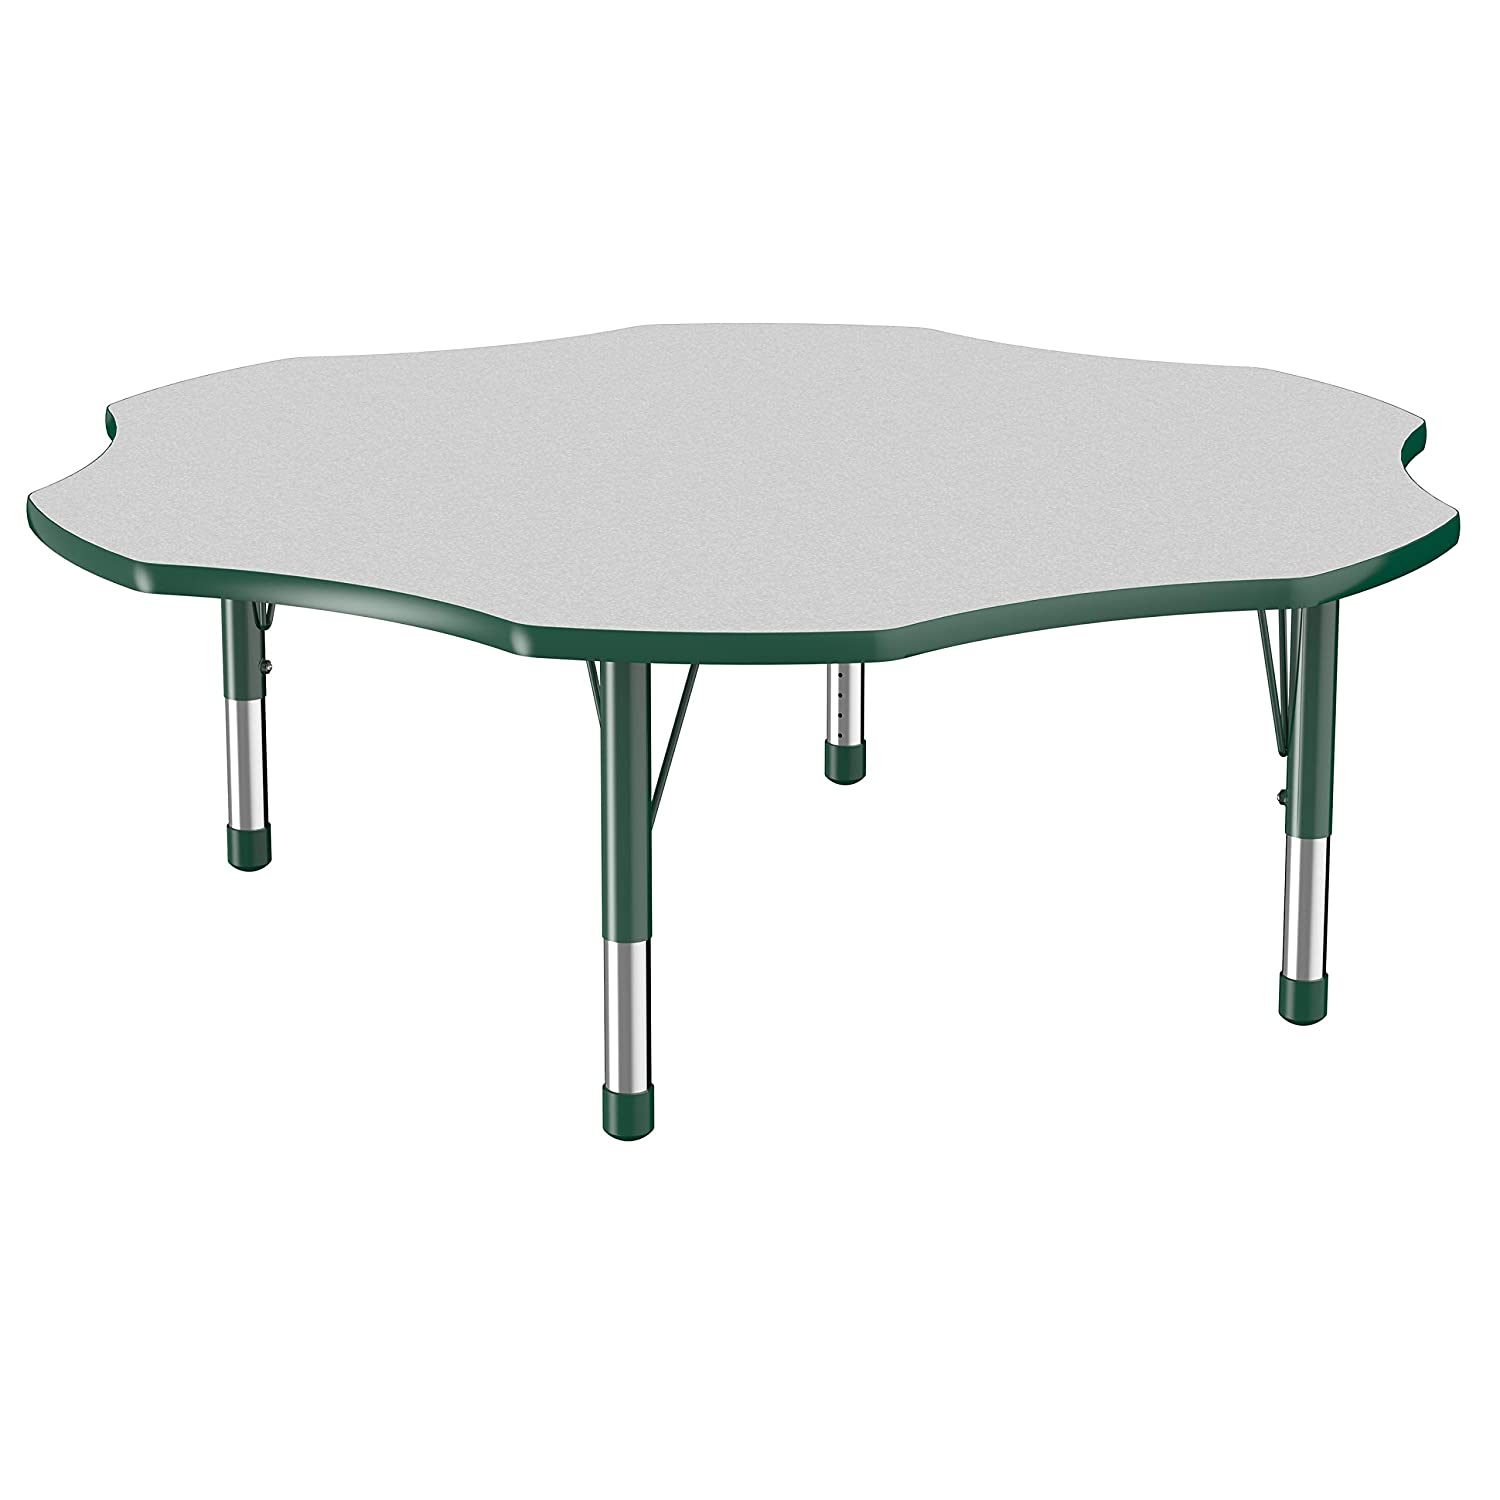 Factory Direct Partners Flower Activity School and Classroom Kids Table (60 inch), Toddler Legs for Collaborative Seating Environments, Adjustable Height 15-24 inches - Gray Top and Green Edge